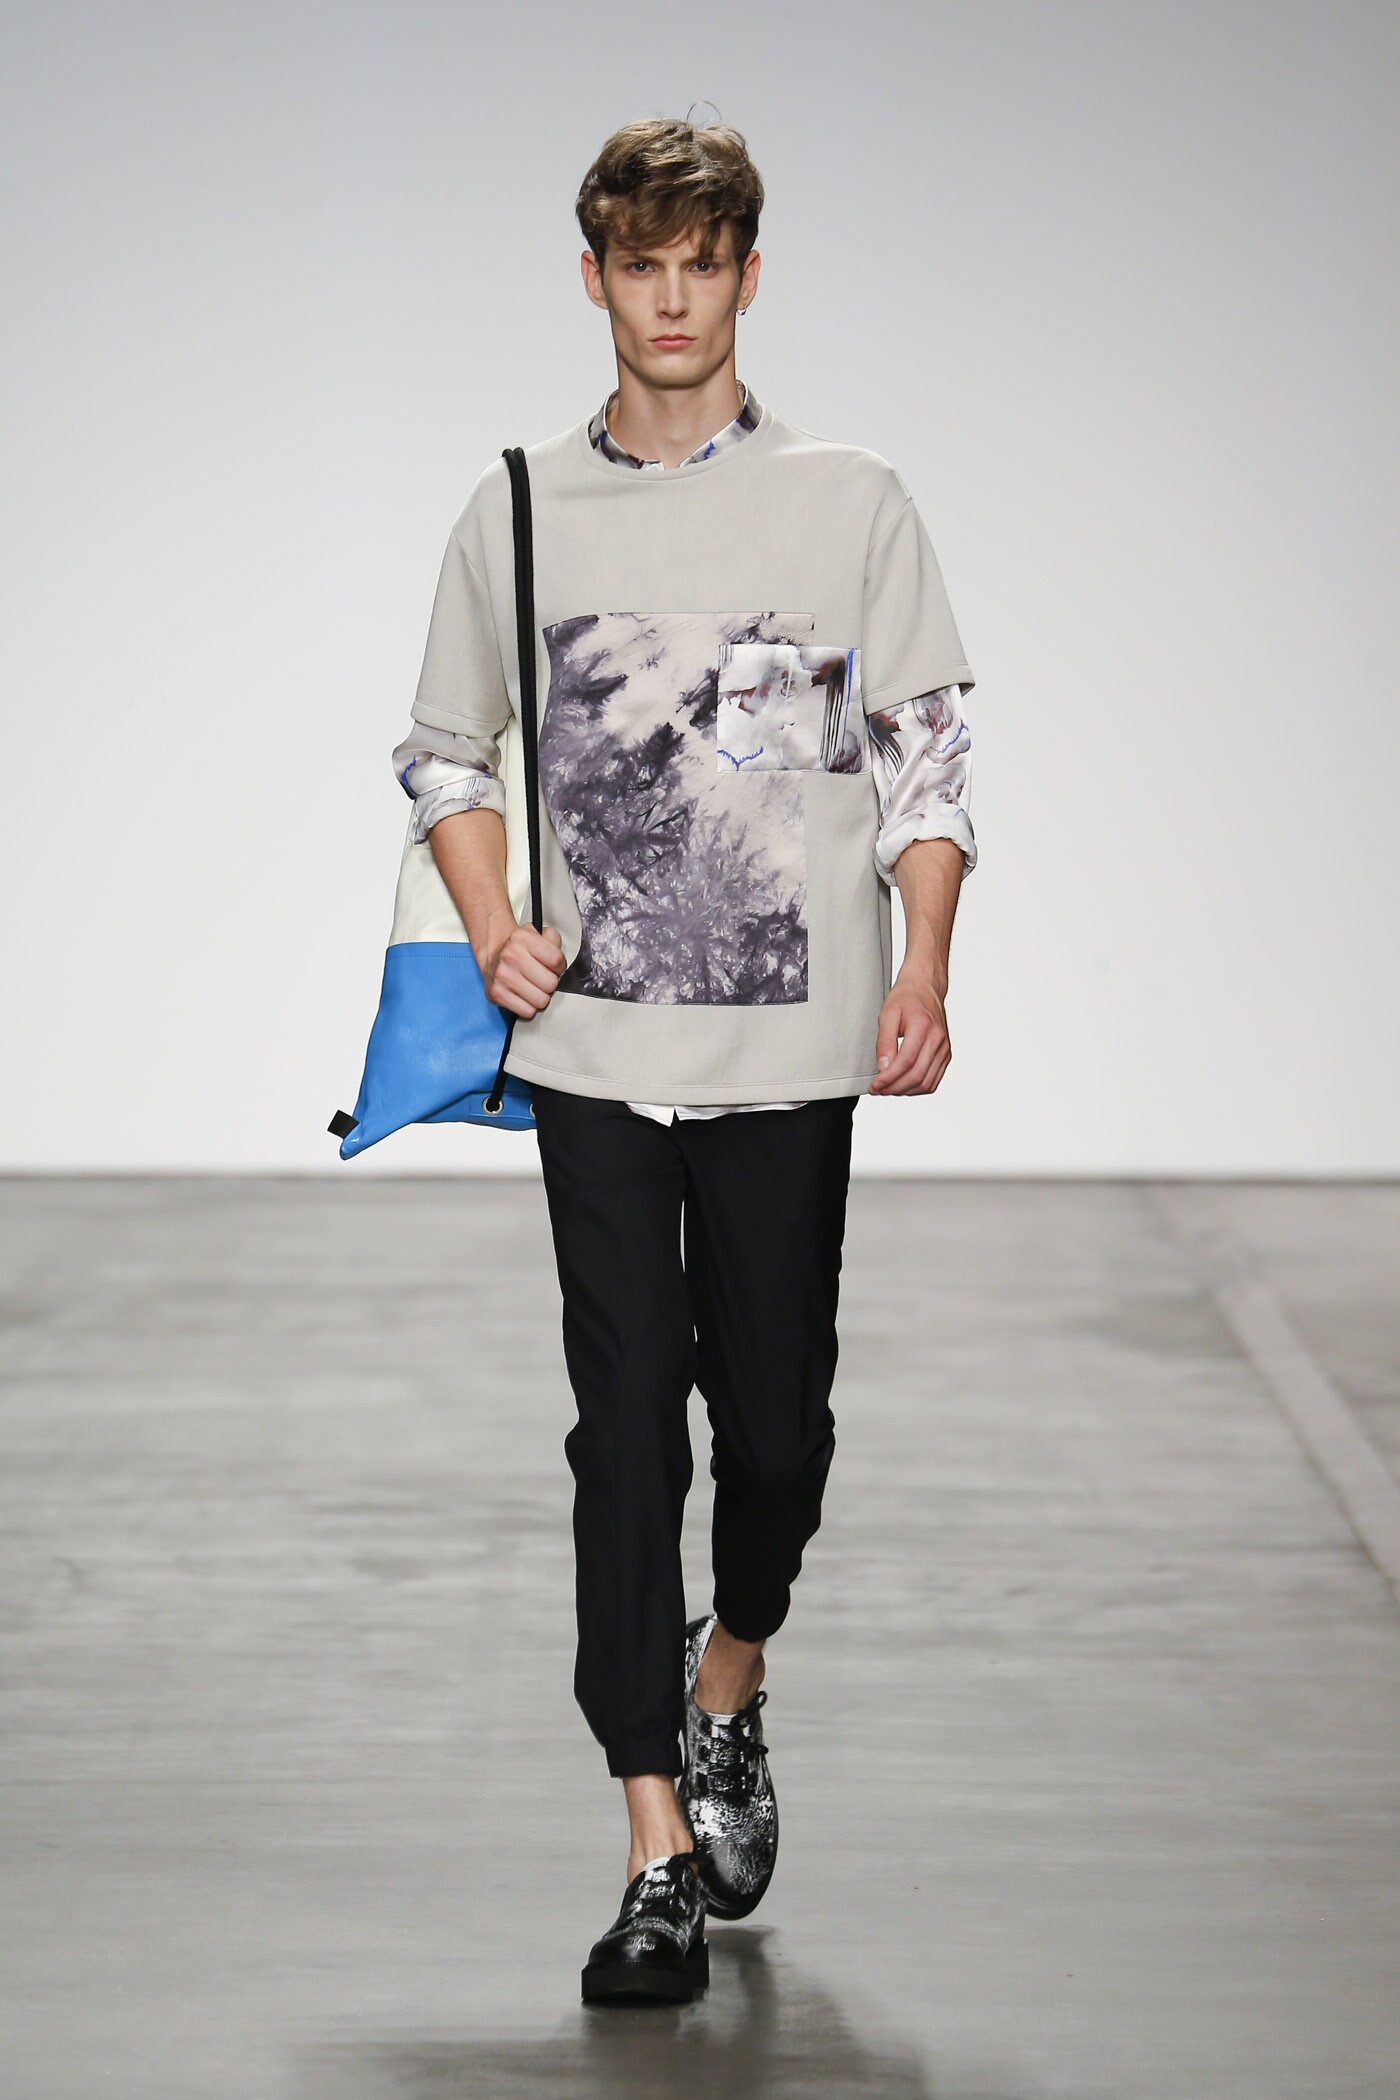 Spring 2015 Man Fashion Show Iceberg